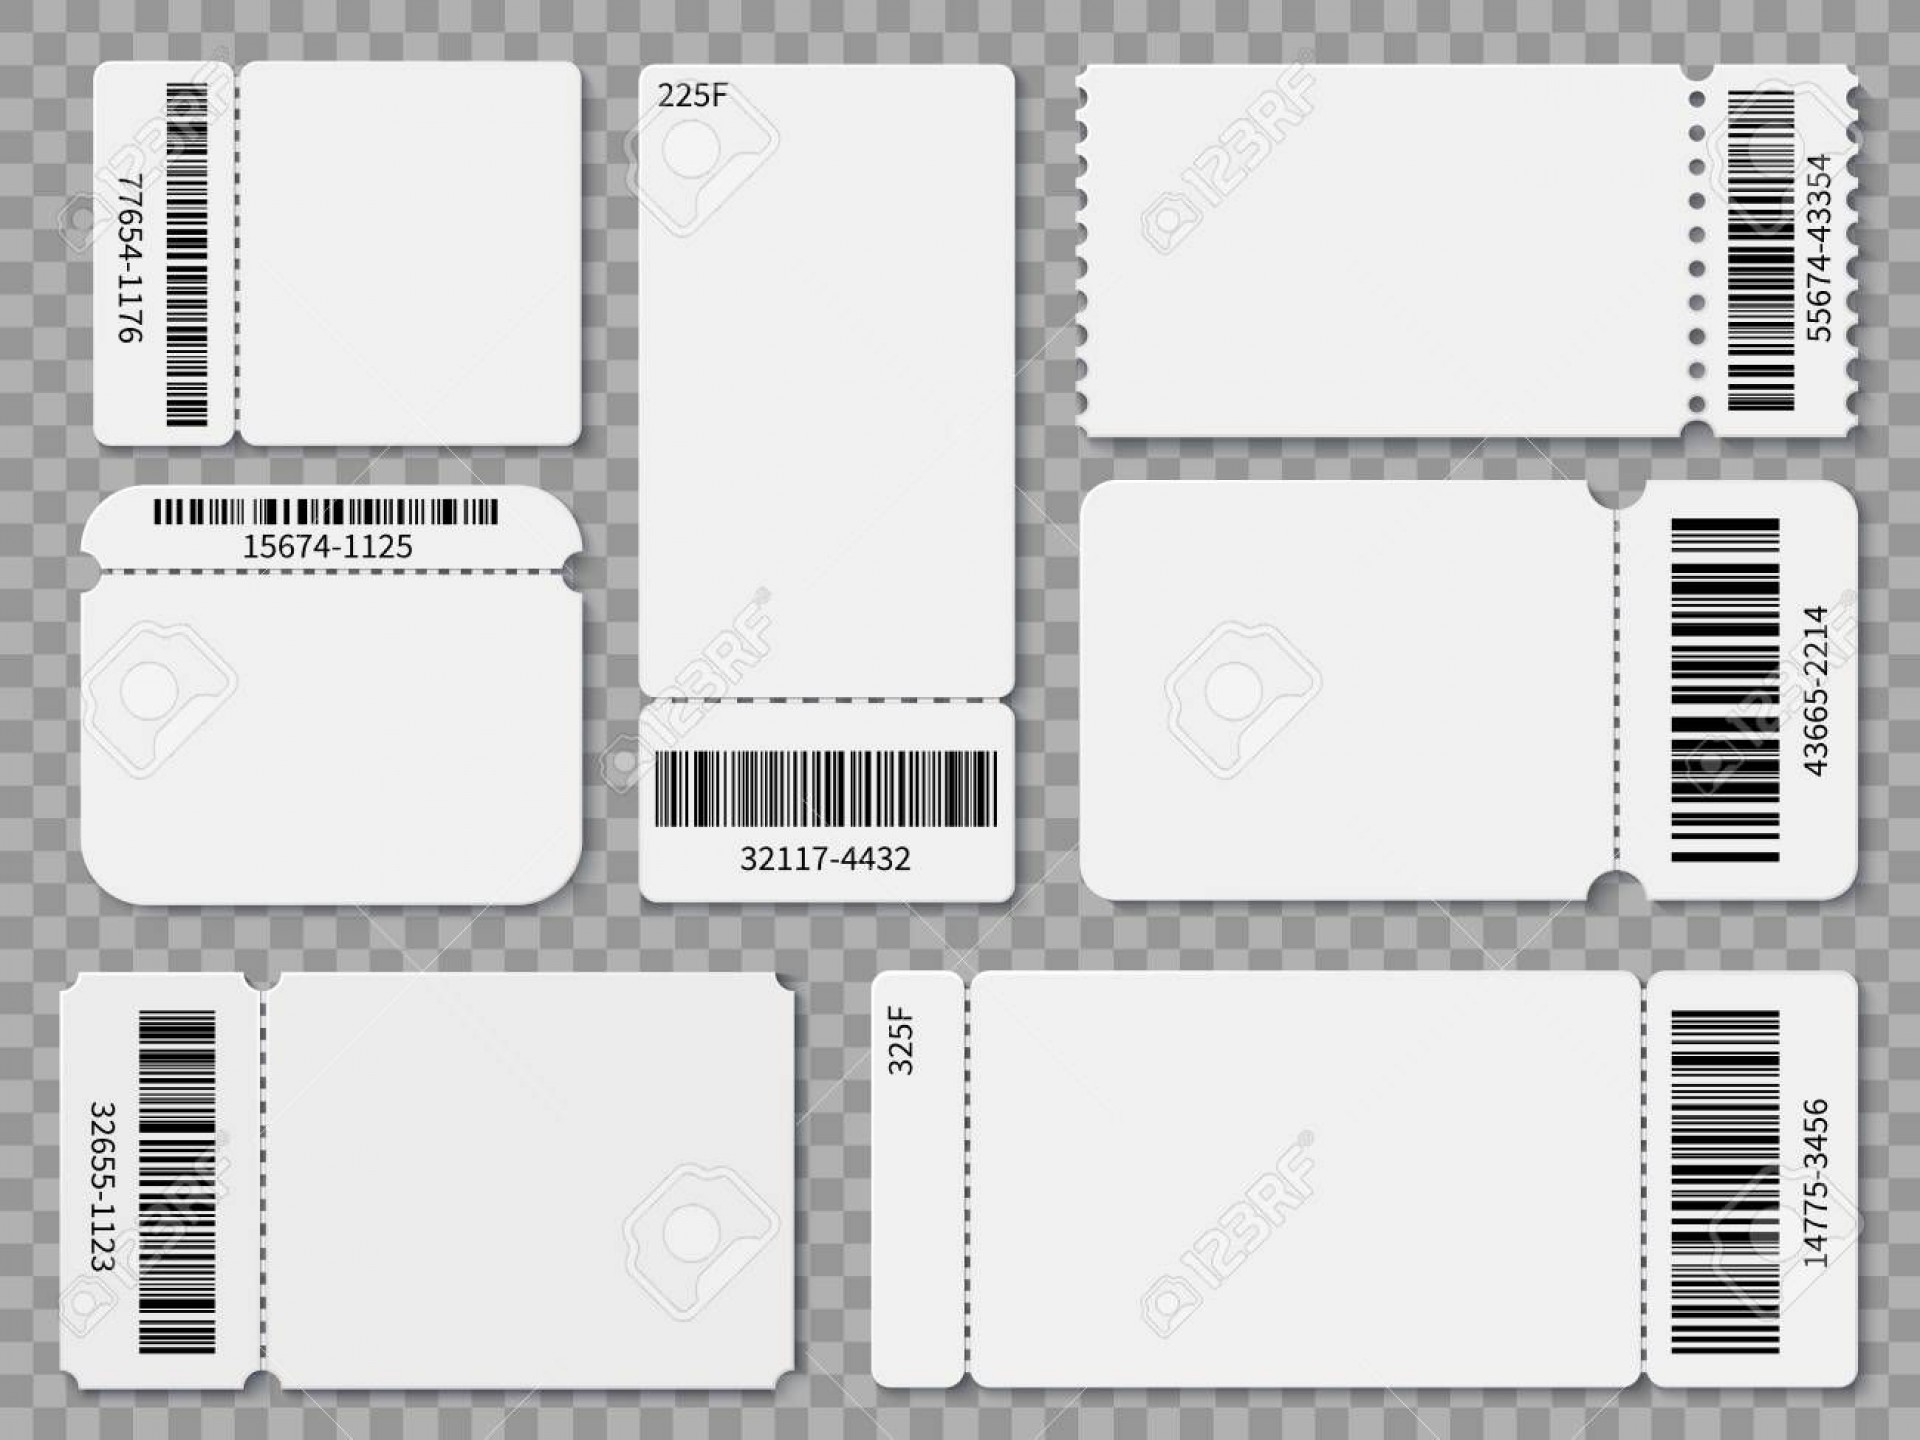 003 Staggering Free Printable Ticket Template Concept  Raffle Printing Airline For Gift Concert1920